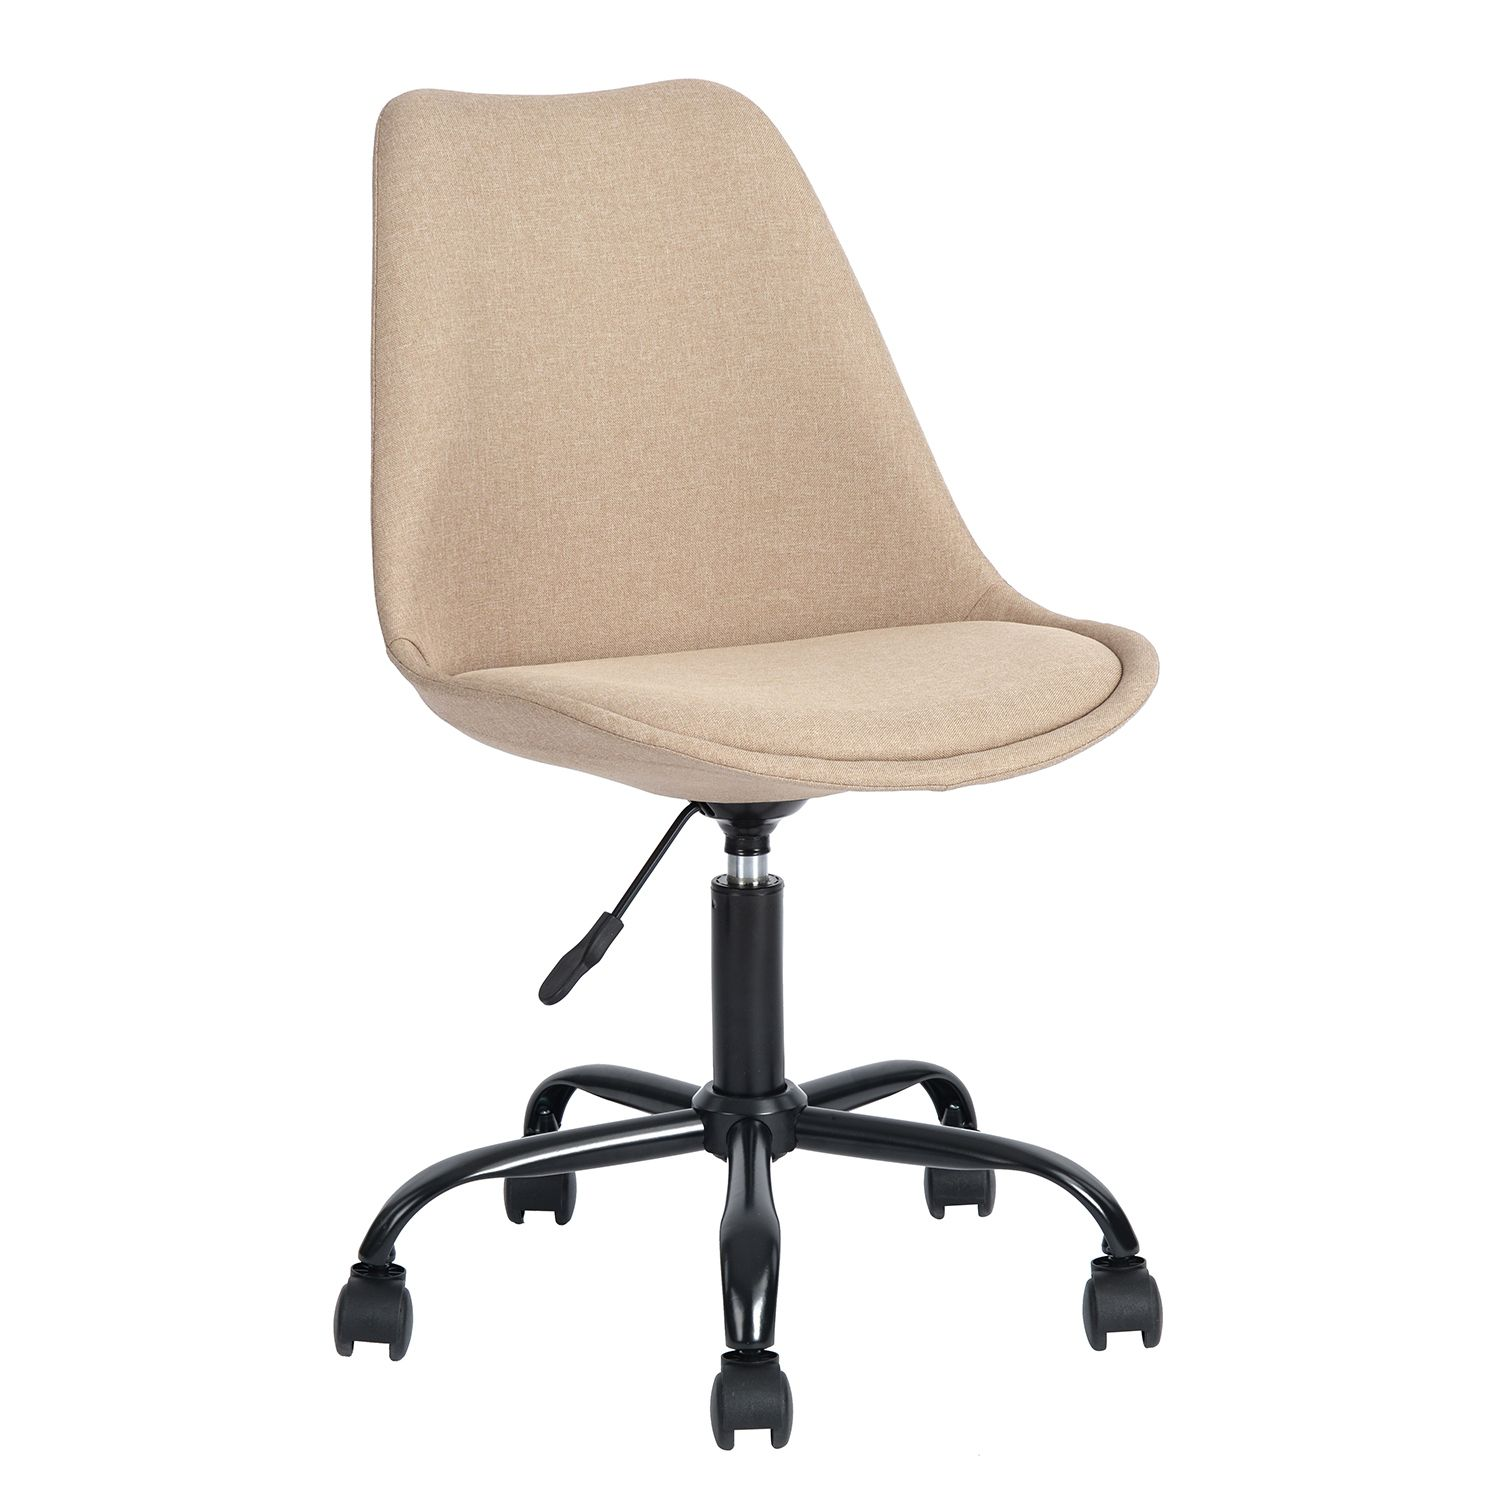 Sensational Student Office Chair Beige Fabric Best Buy In 2019 Best Alphanode Cool Chair Designs And Ideas Alphanodeonline